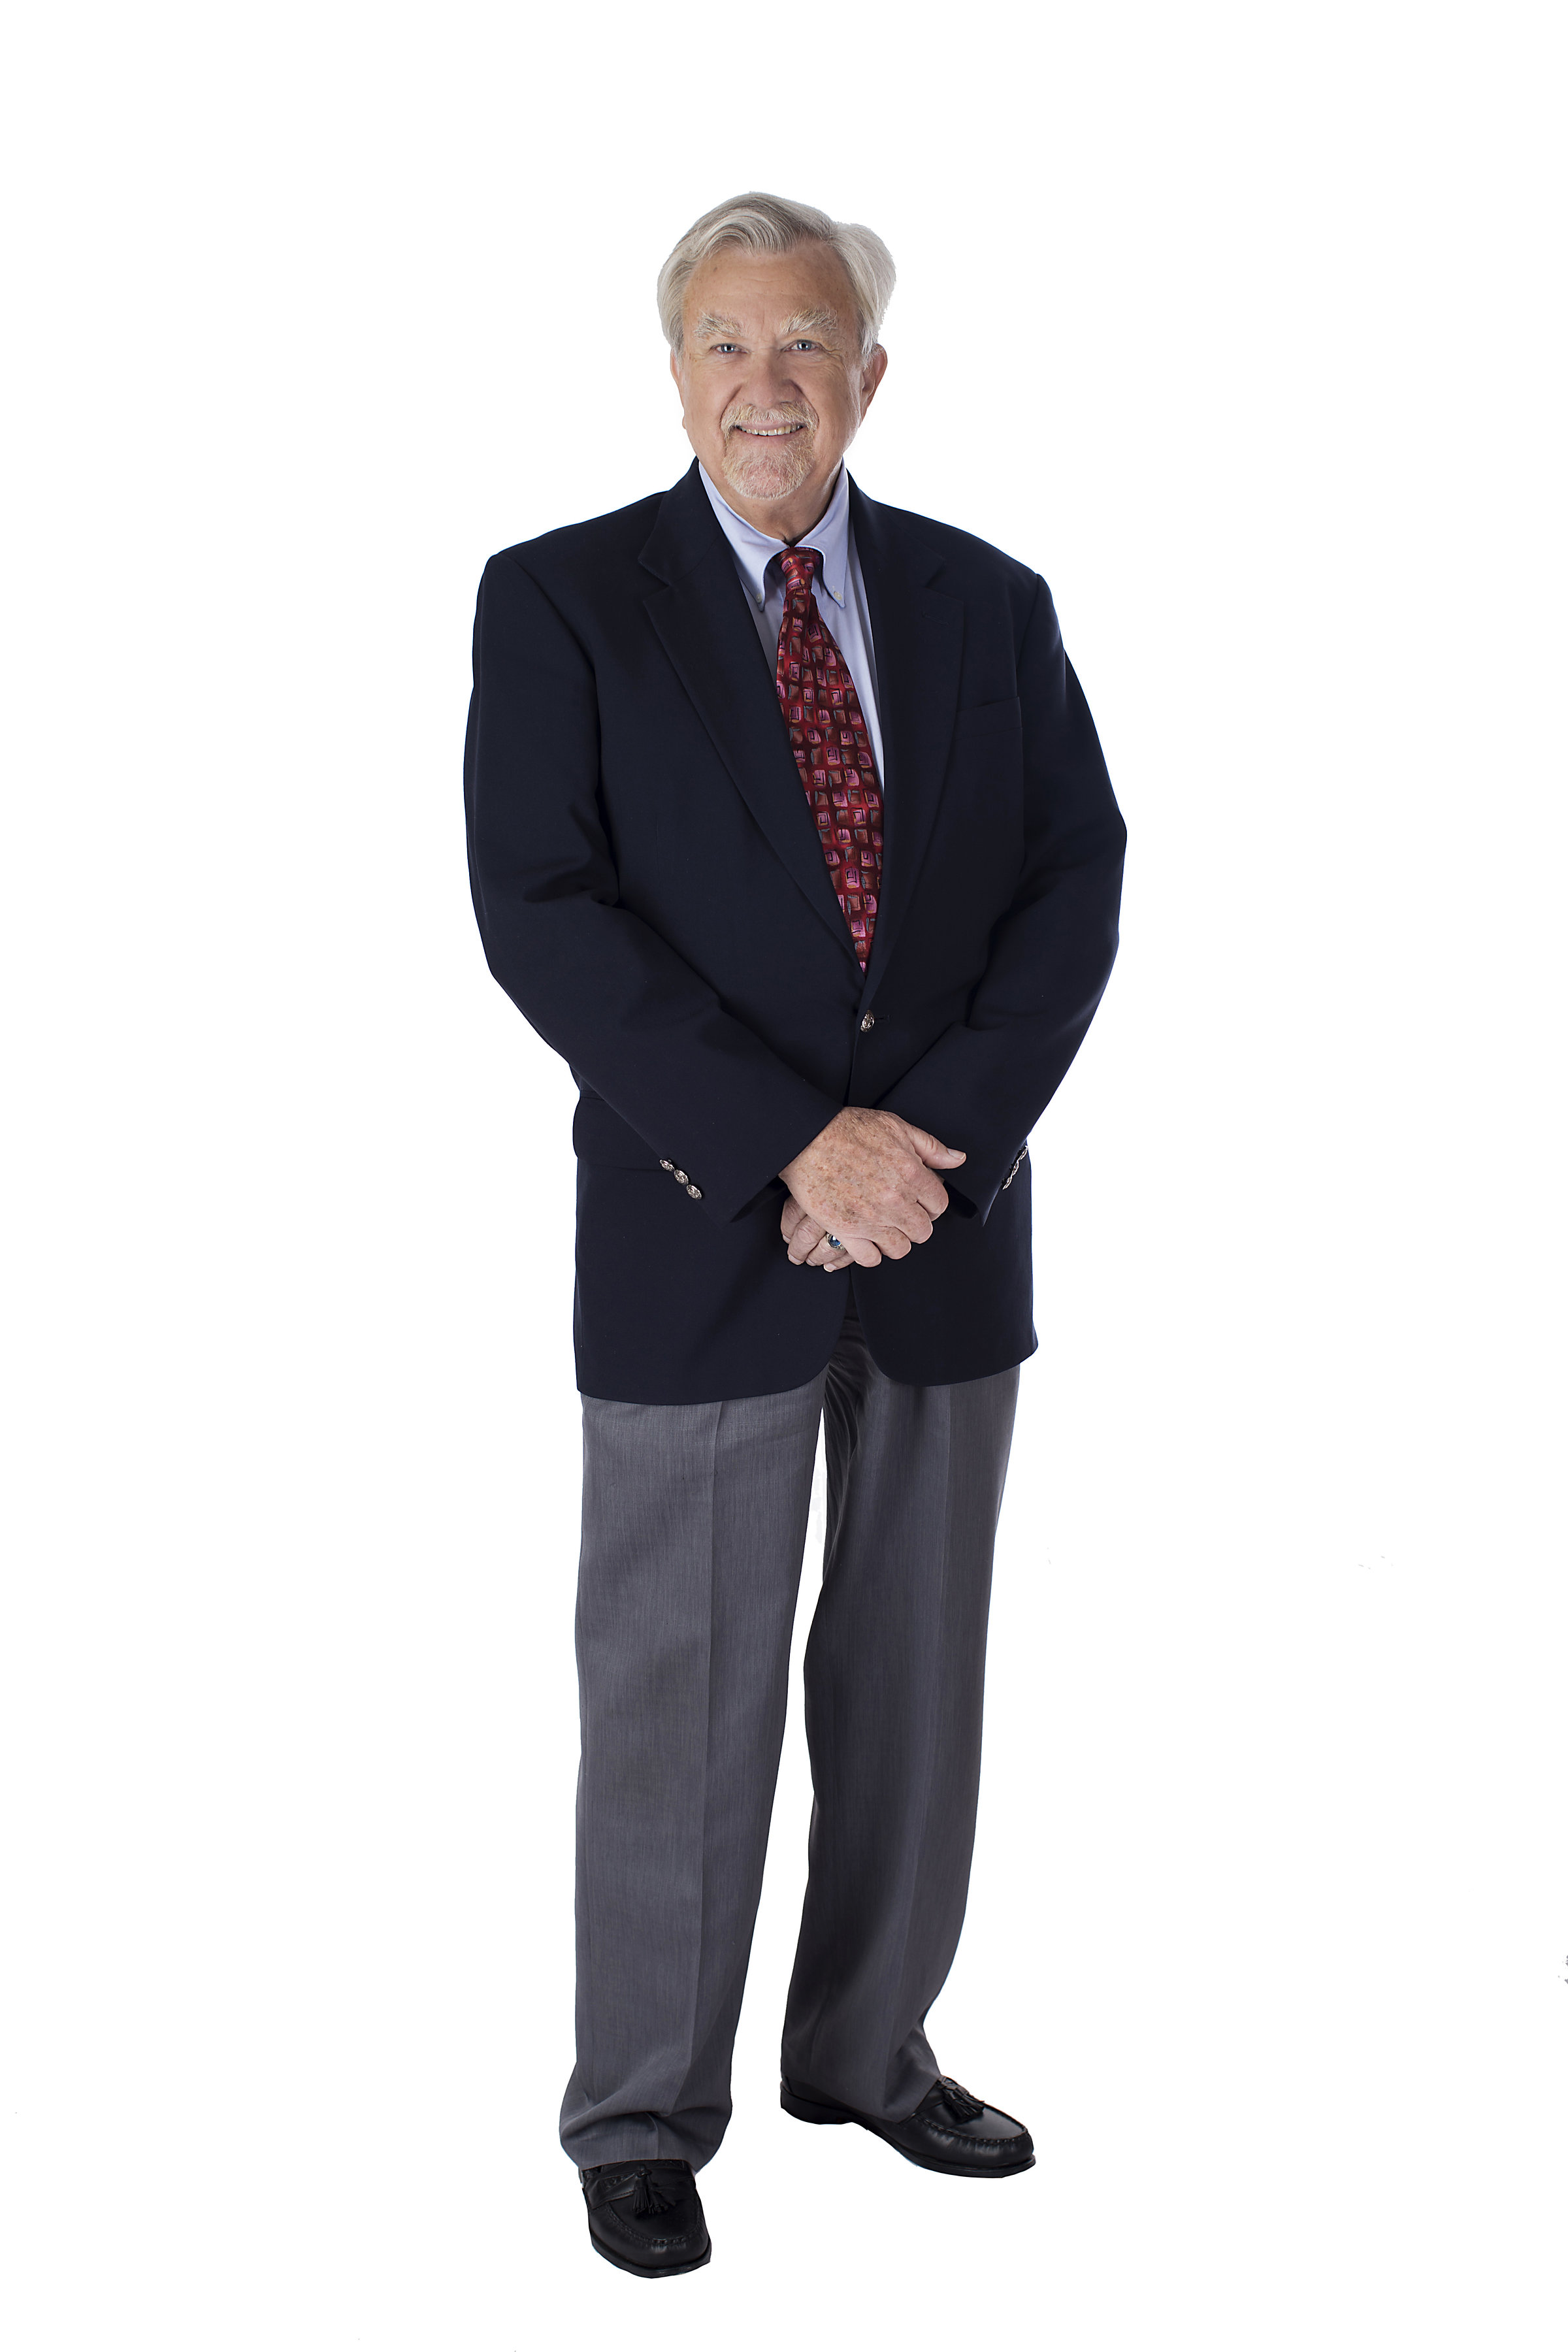 George BlissVice Chair - Bliss Realty and Investments